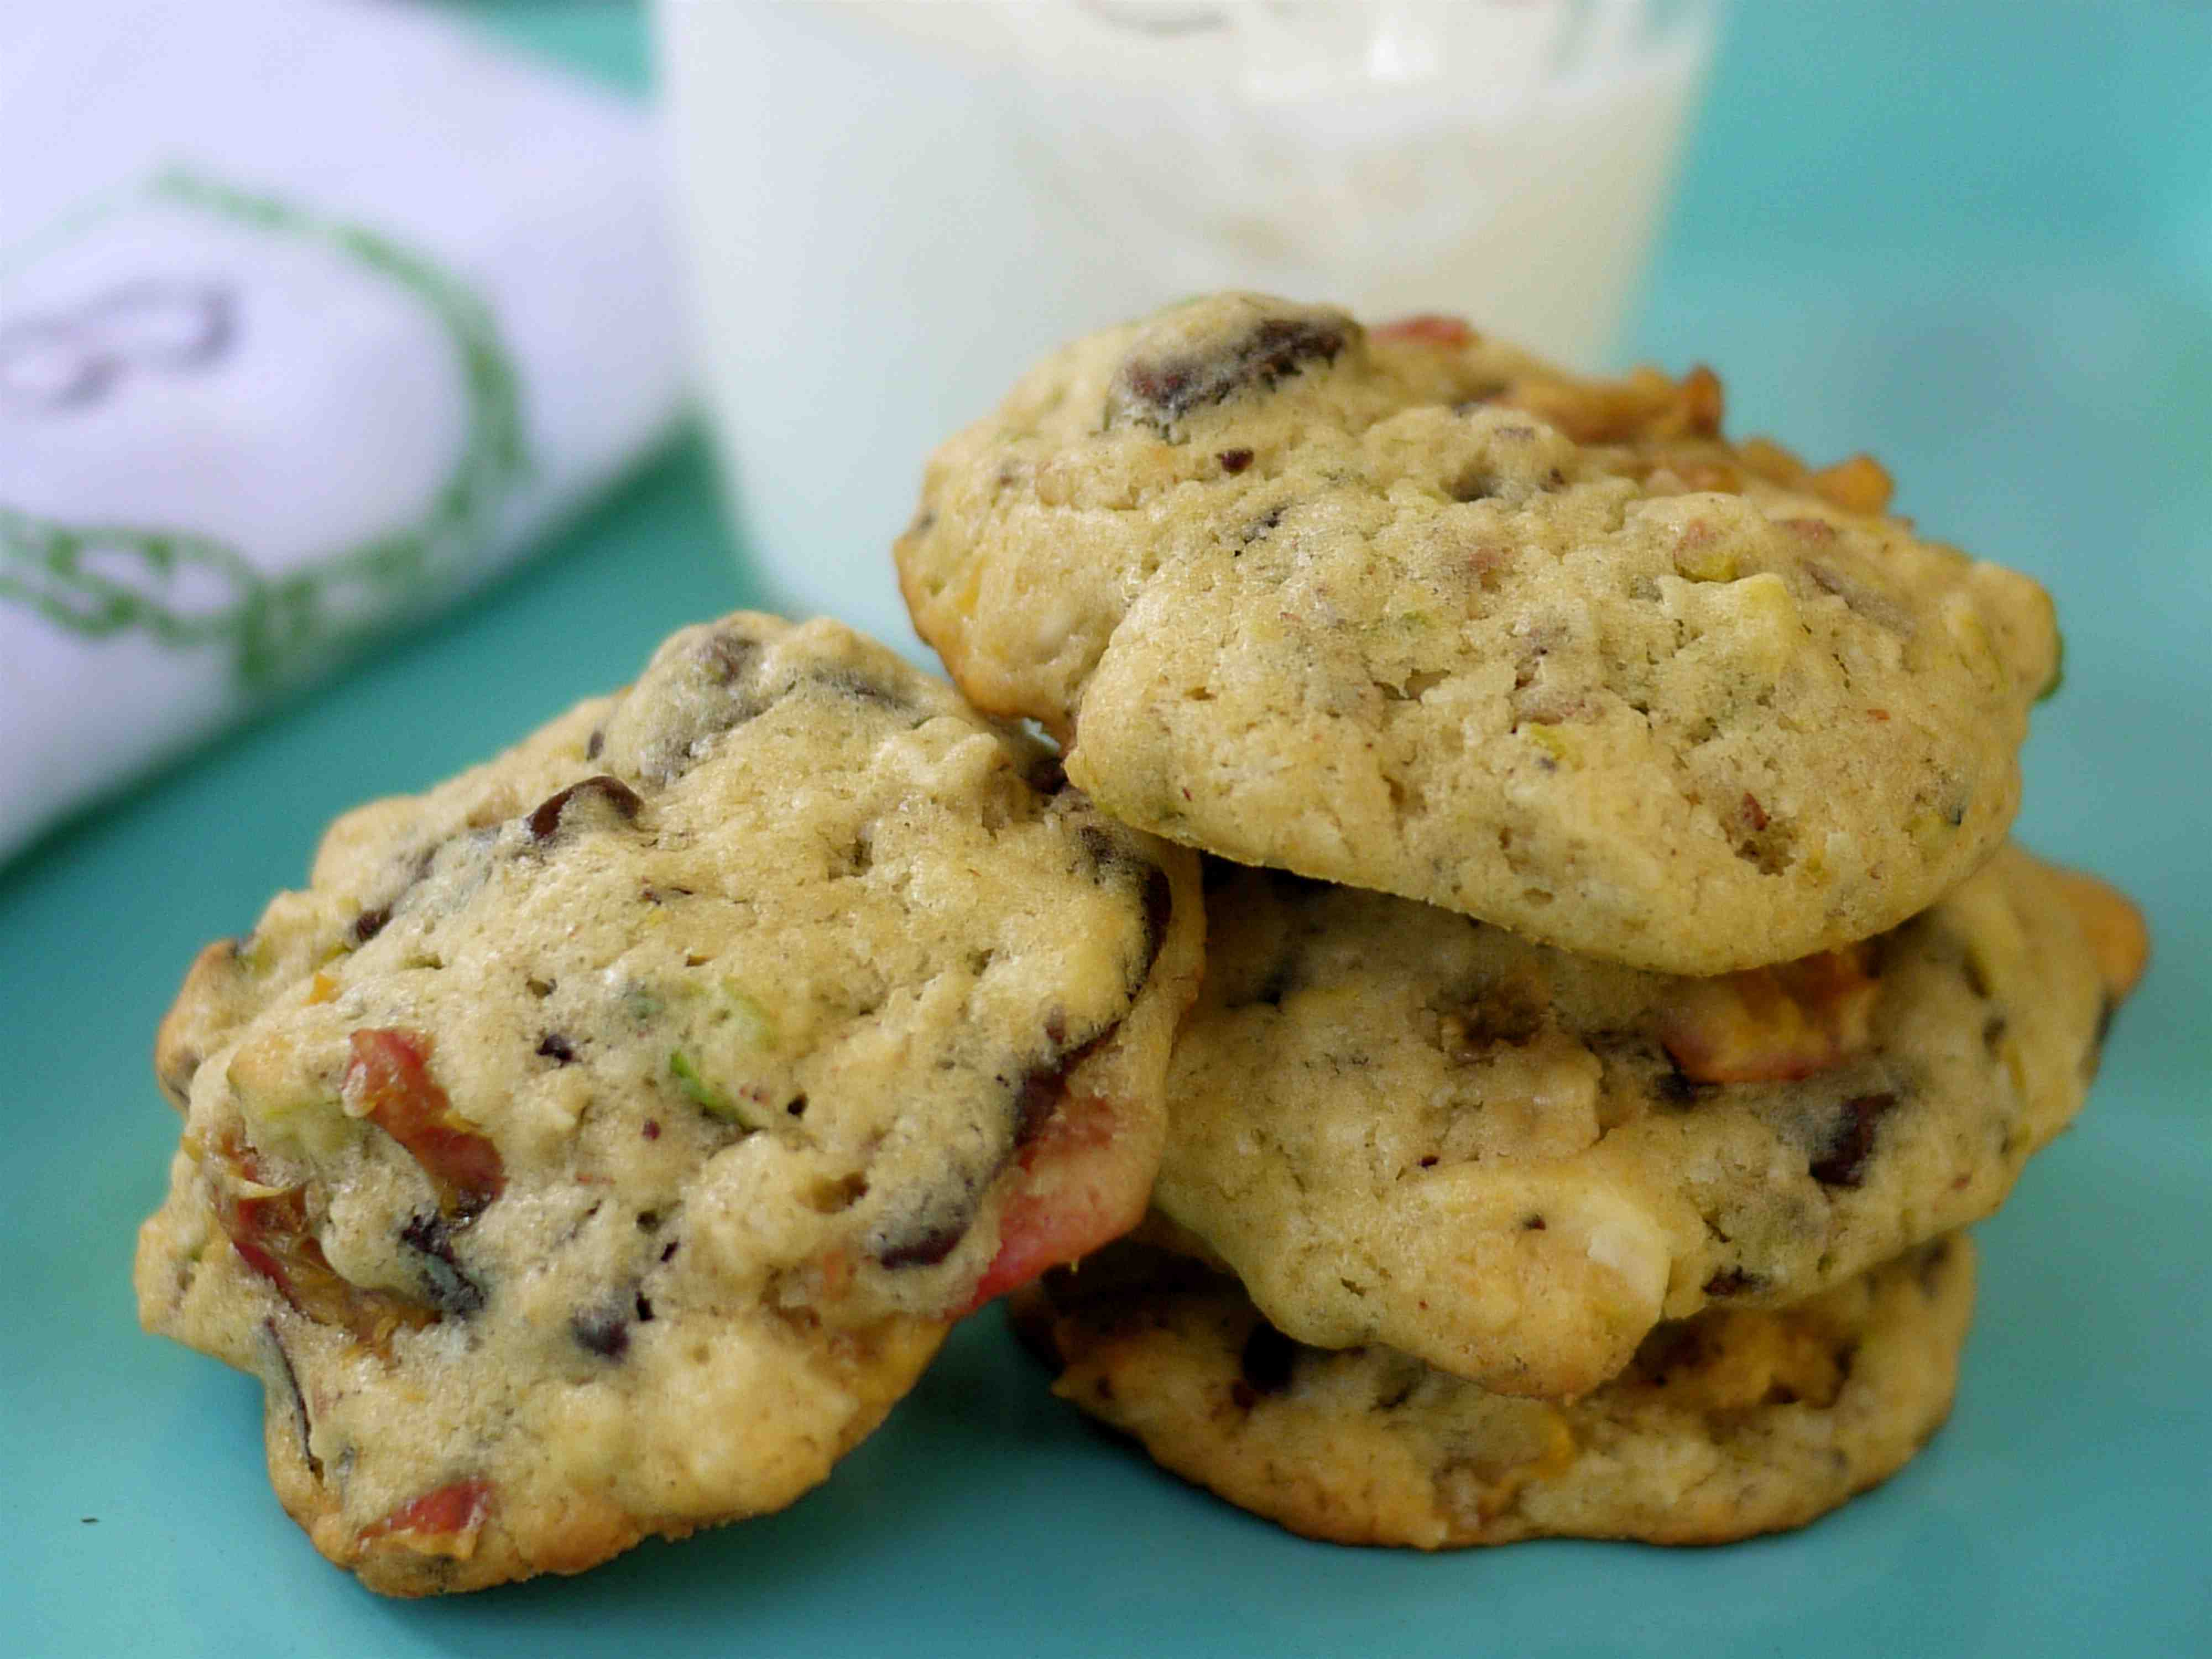 Kitchen sink cookies (cherry, chocolate and pistachio)